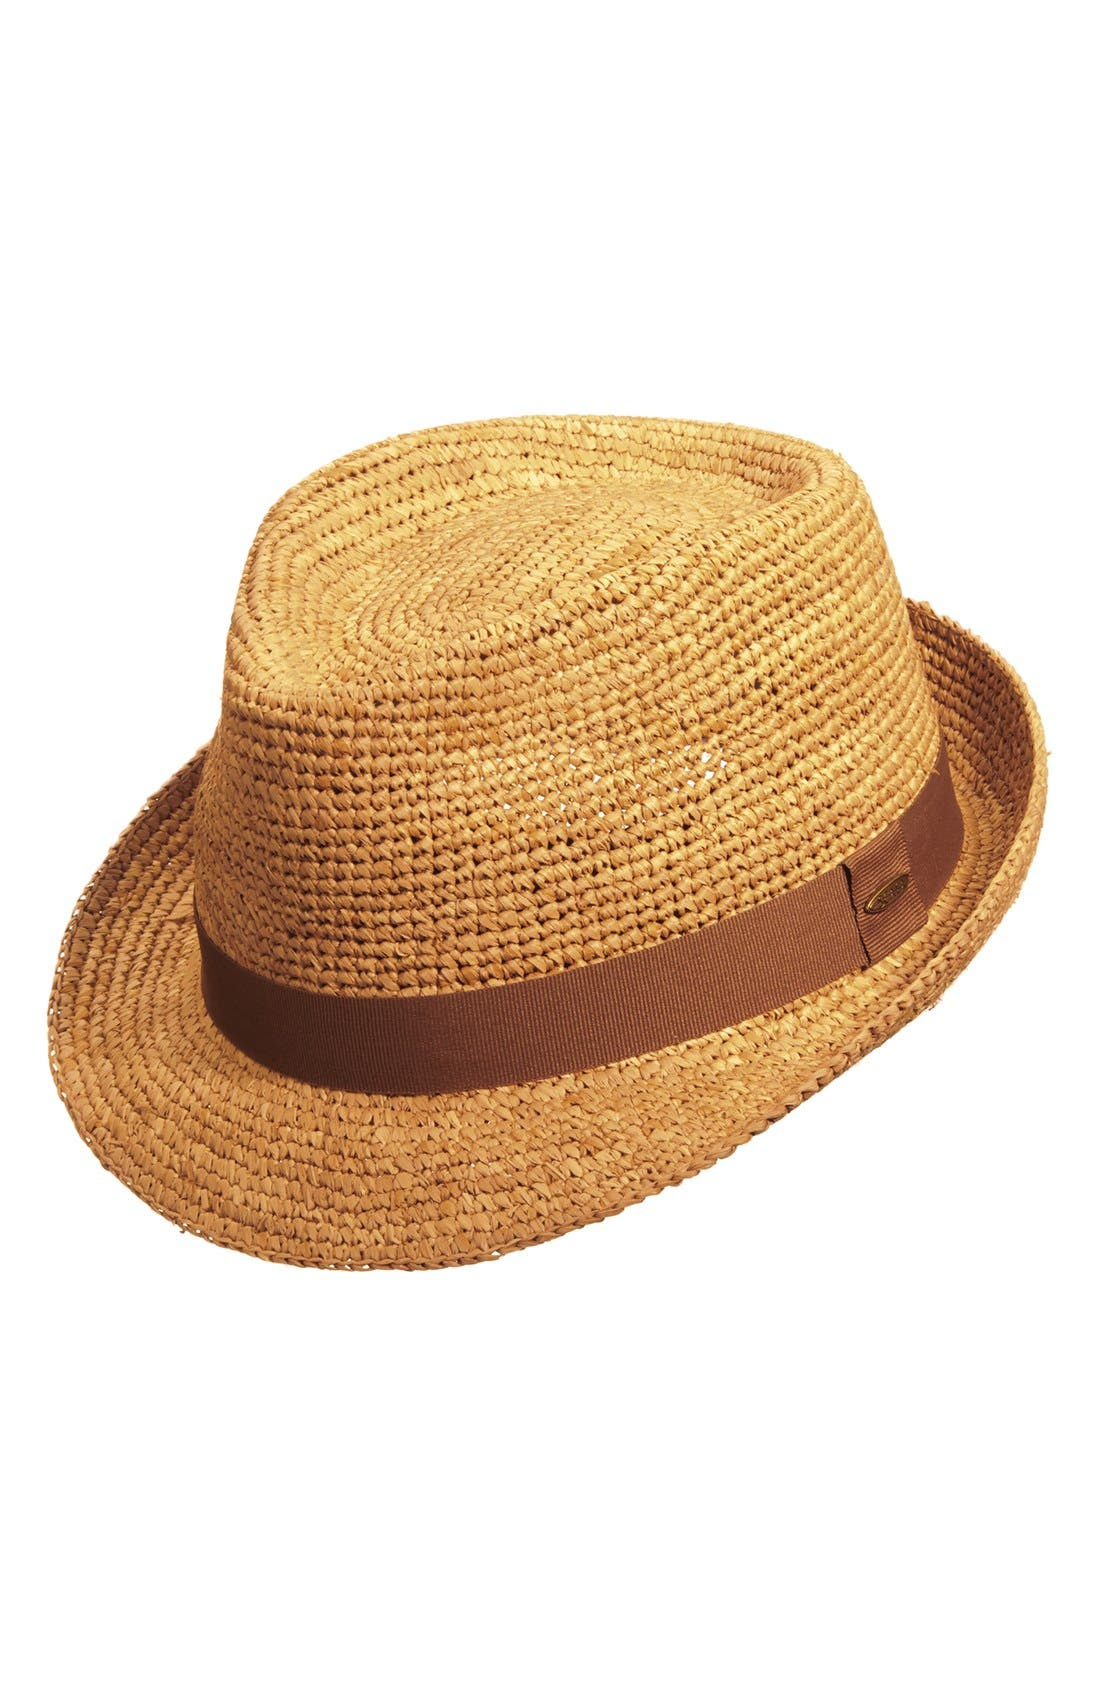 1960s – 70s Style Men's Hats Mens Scala Straw Trilby Size LargeX-Large - Brown $80.00 AT vintagedancer.com